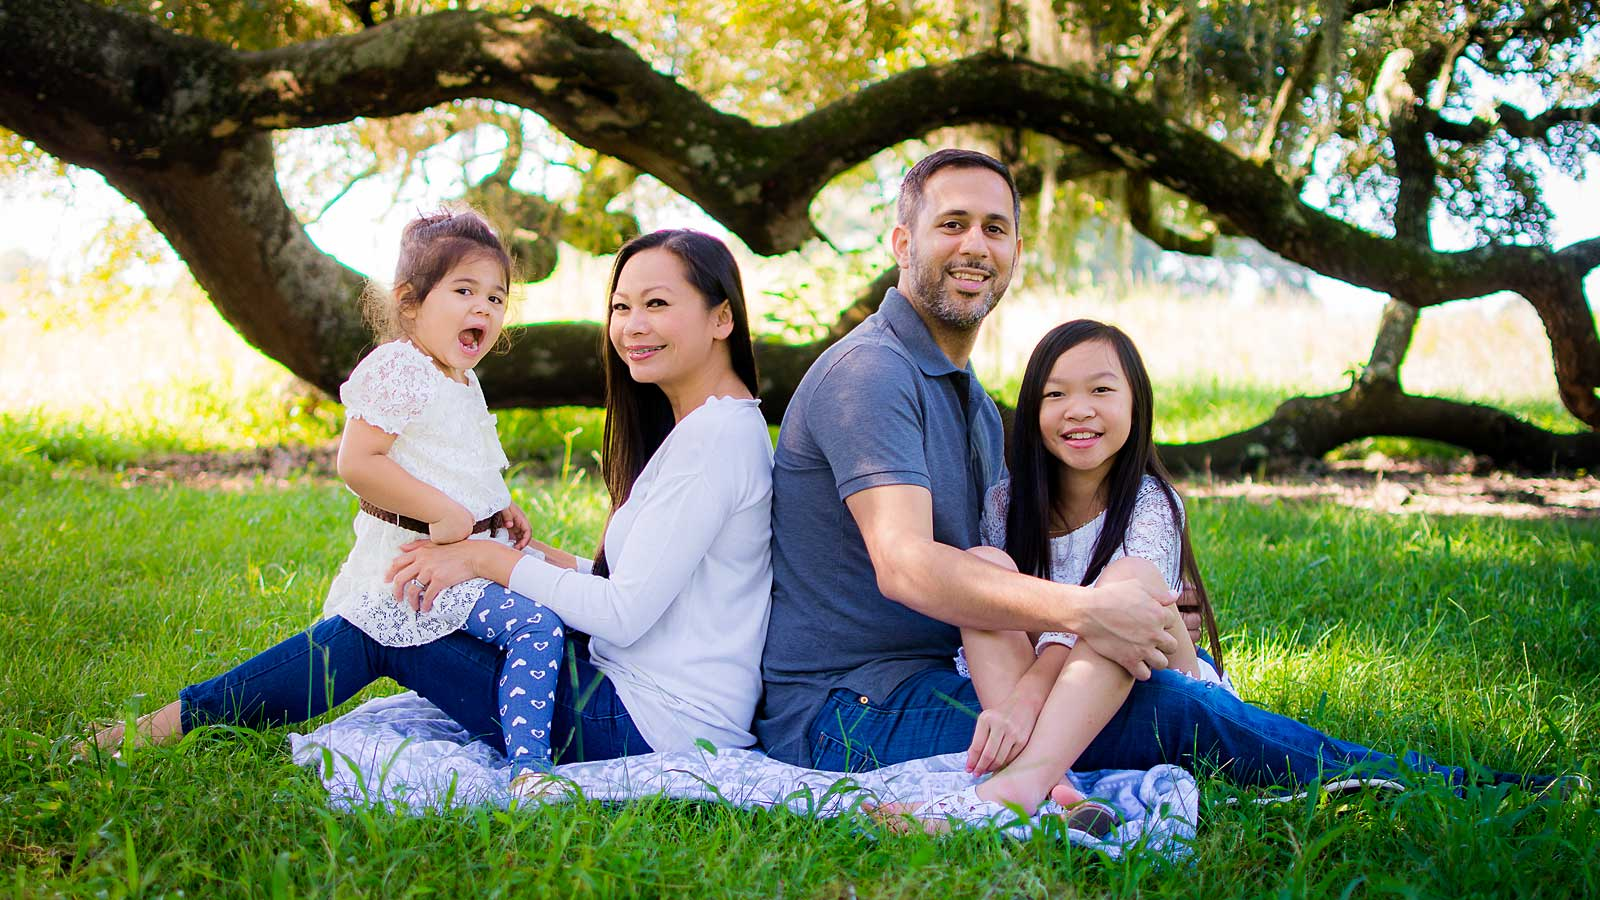 Outdoor family photo session under the oak trees by Needville, Texas family photographer Kristen Richards